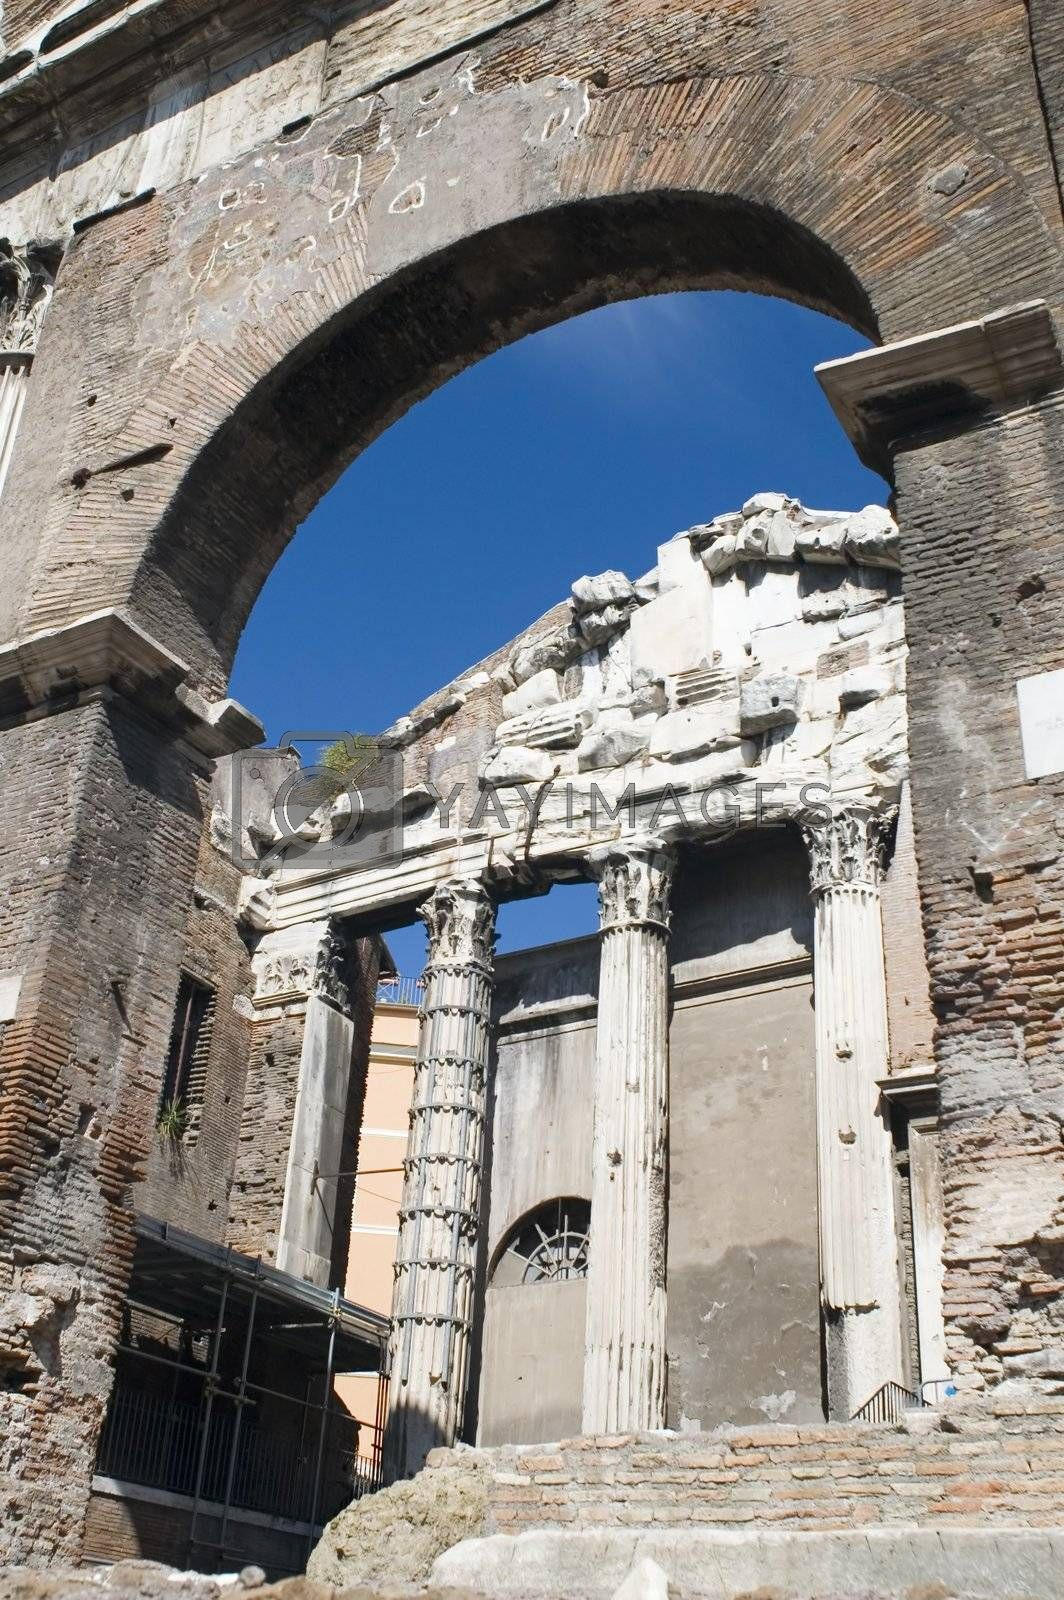 Royalty free image of arch on roman forum by Garry518